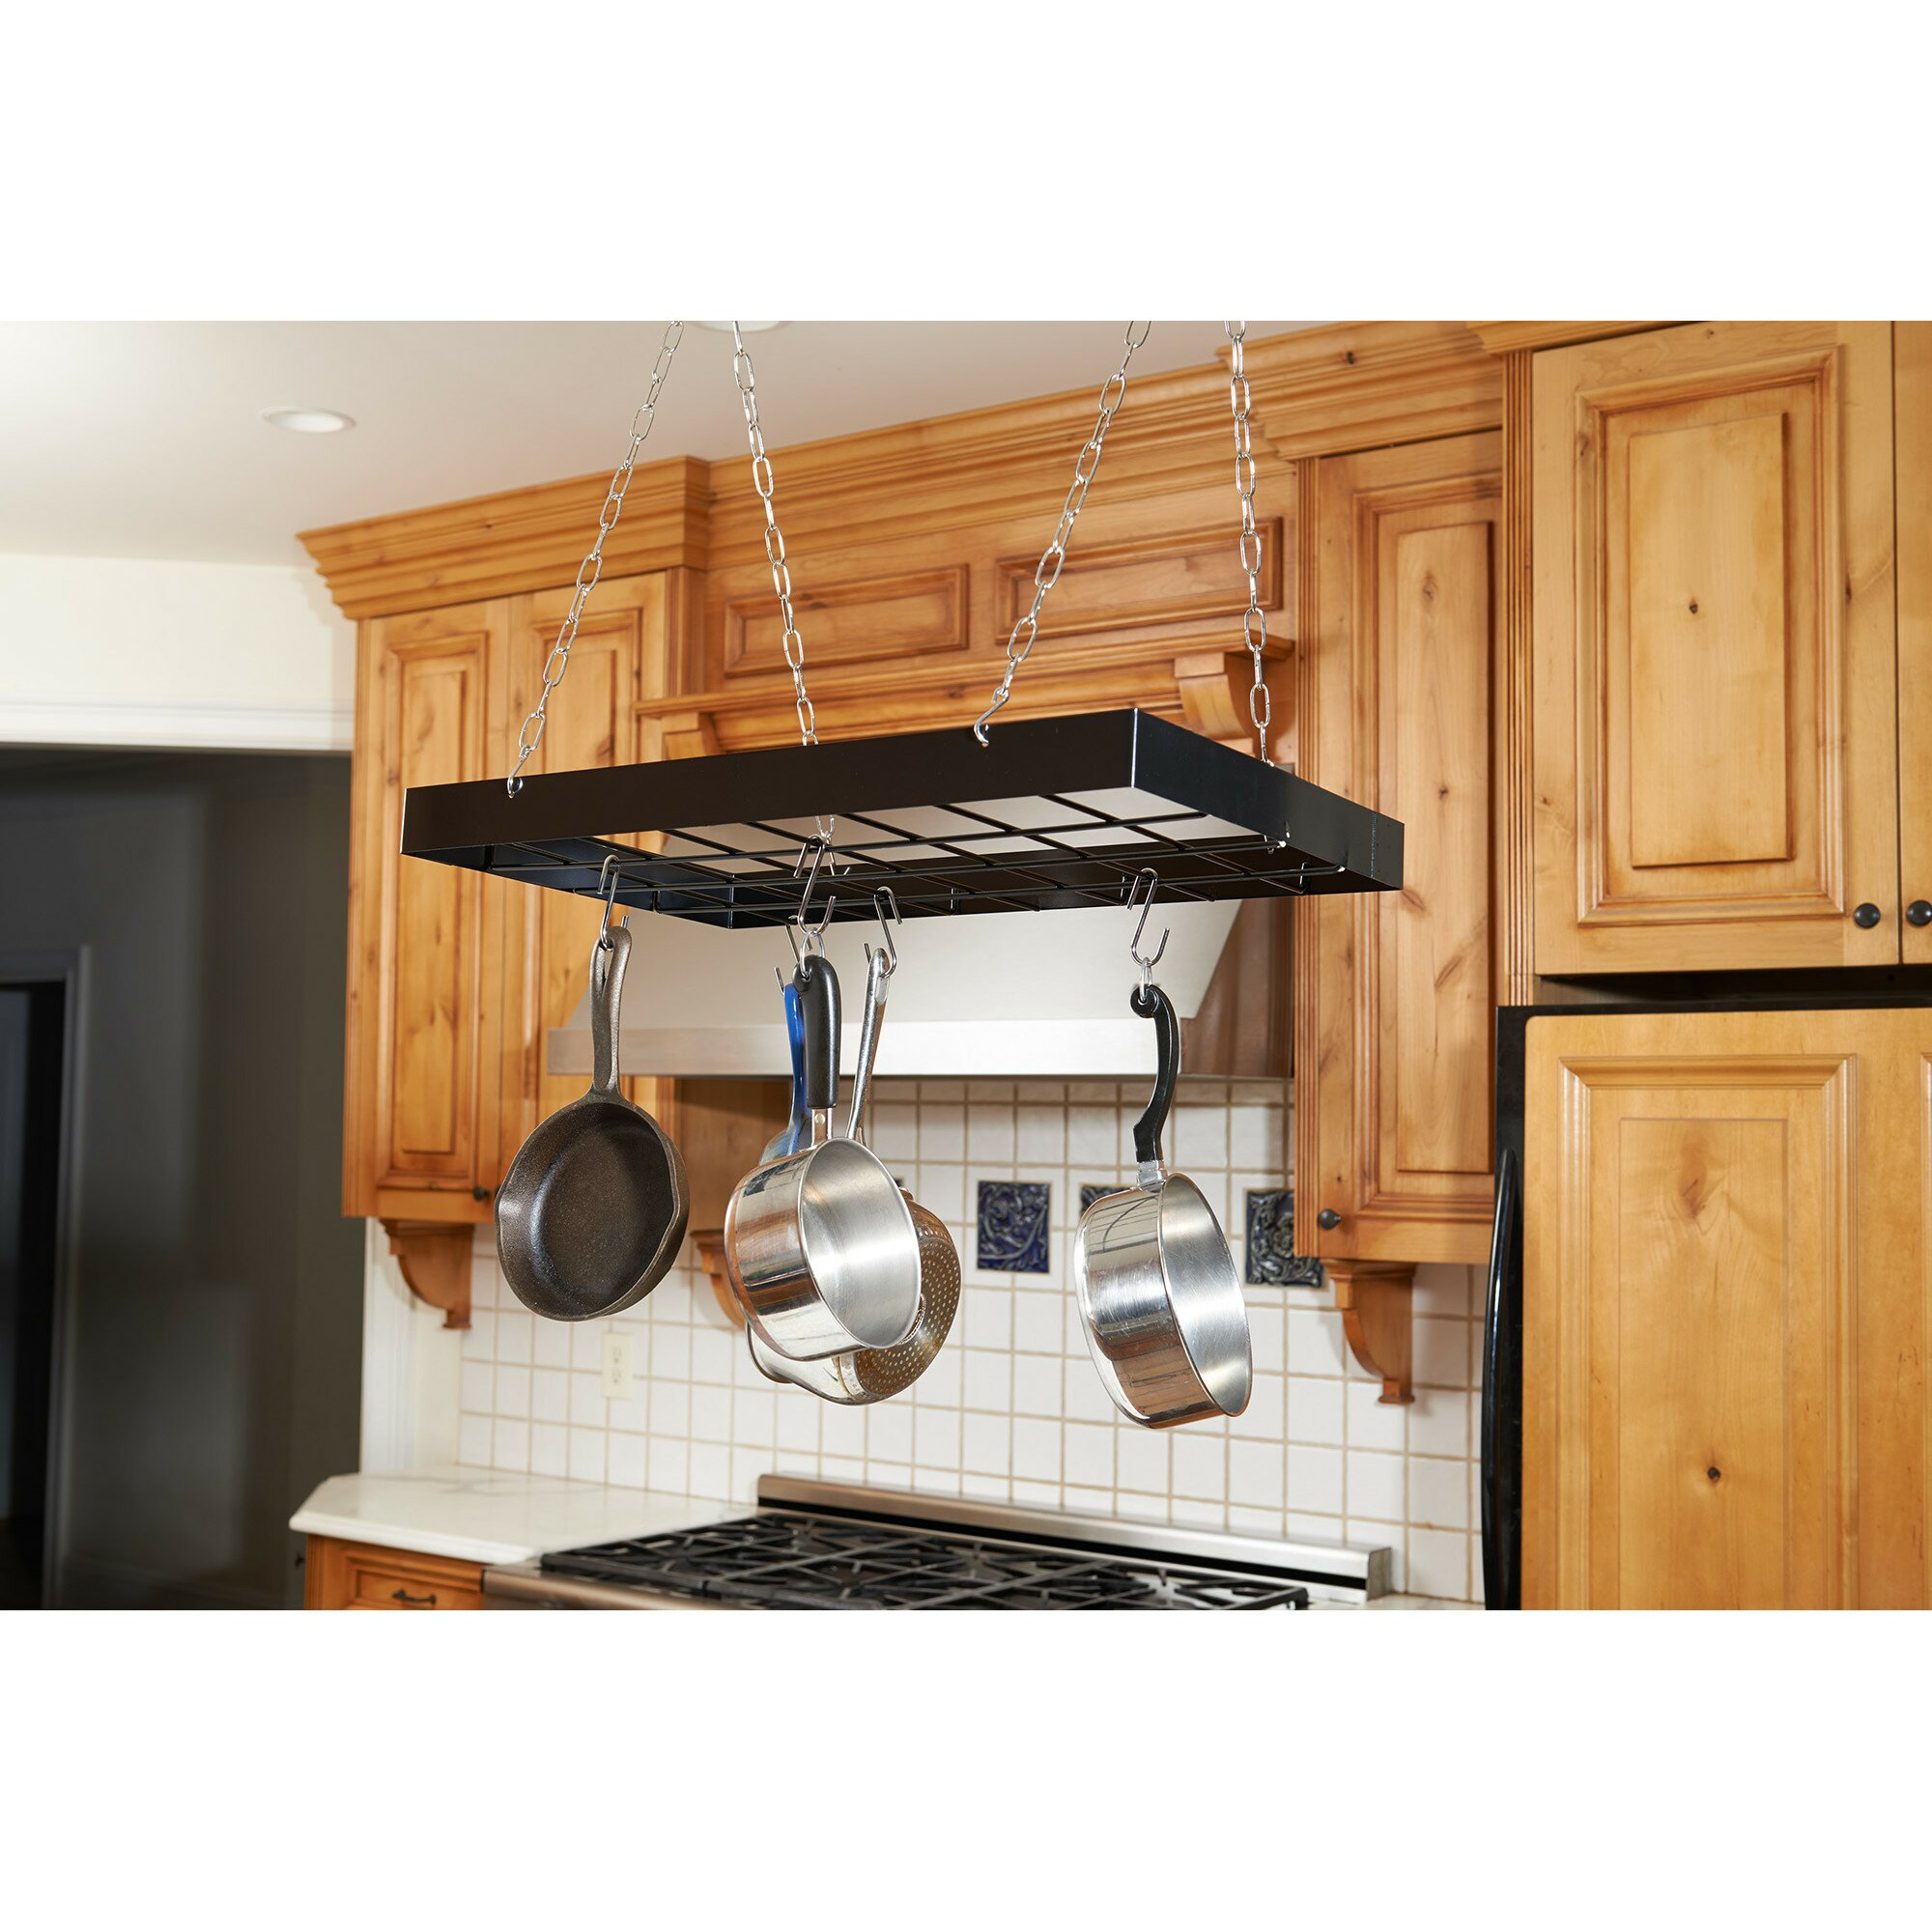 Kitchen Ceiling Hanging Rack Rebrilliant Rectangular Hanging Pot Rack Reviews Wayfair